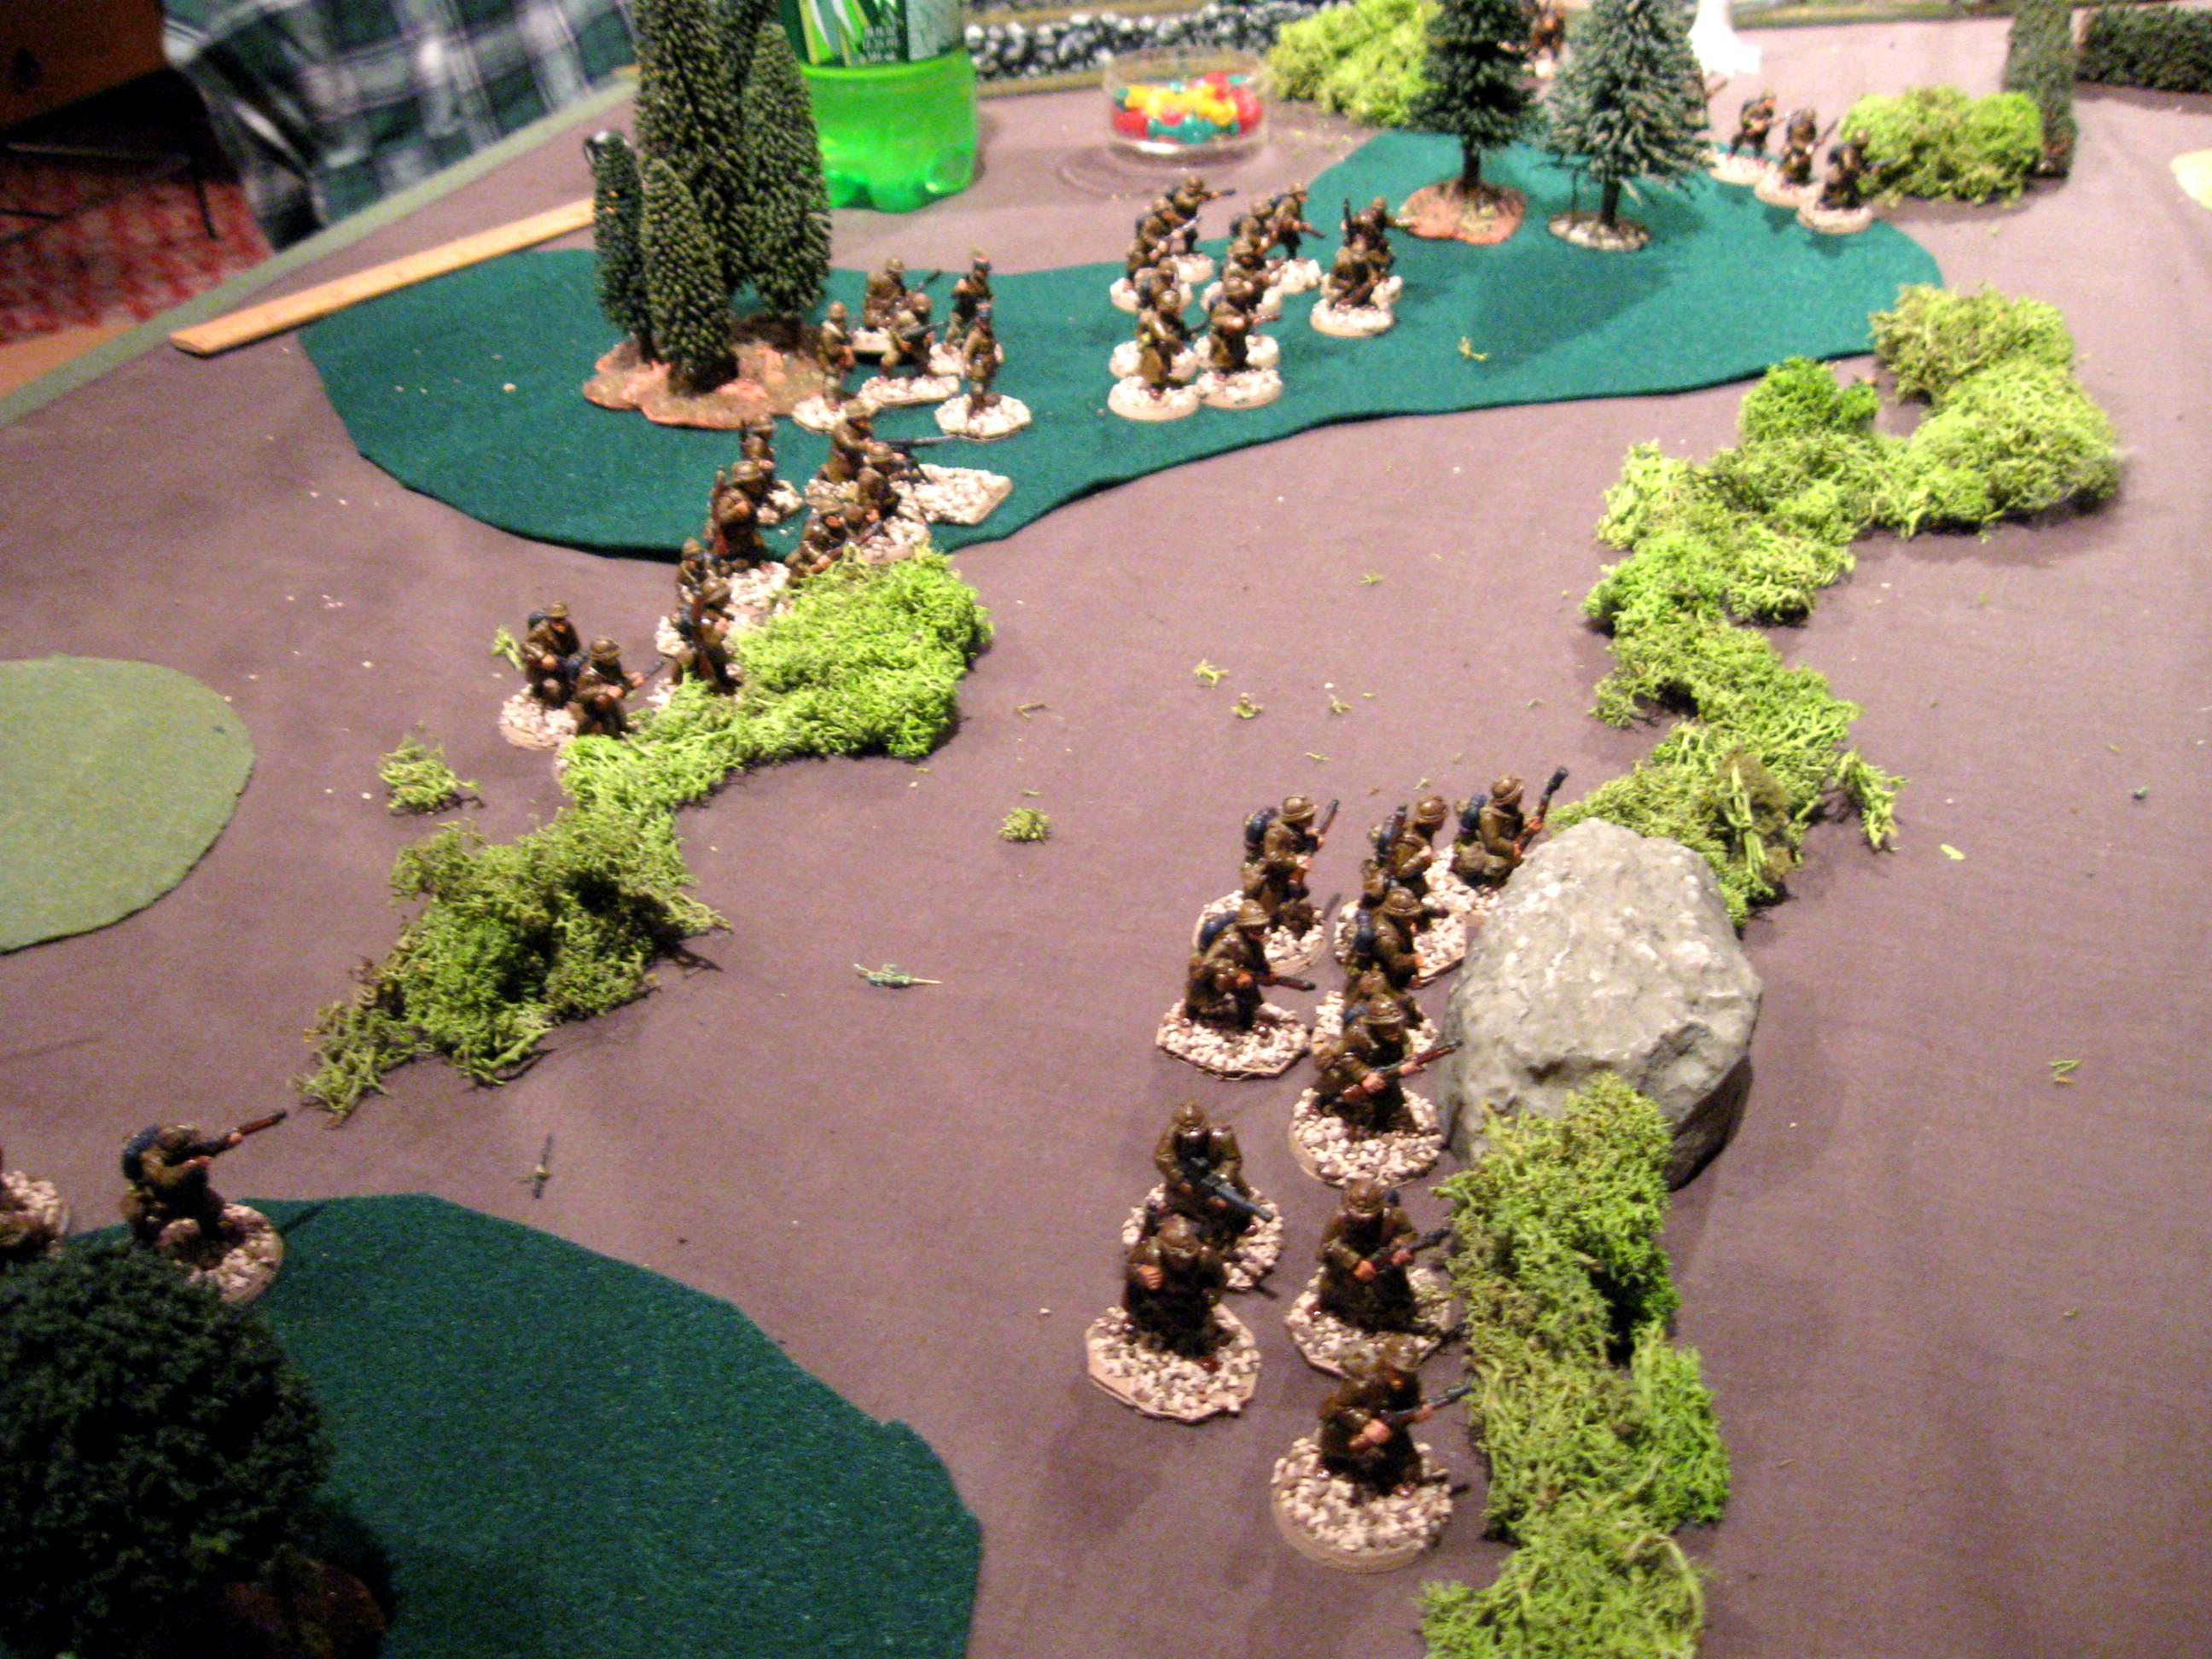 25mm, 28mm, Battle Report, Disposable Heroes, French, Germans, Historical, World War 2